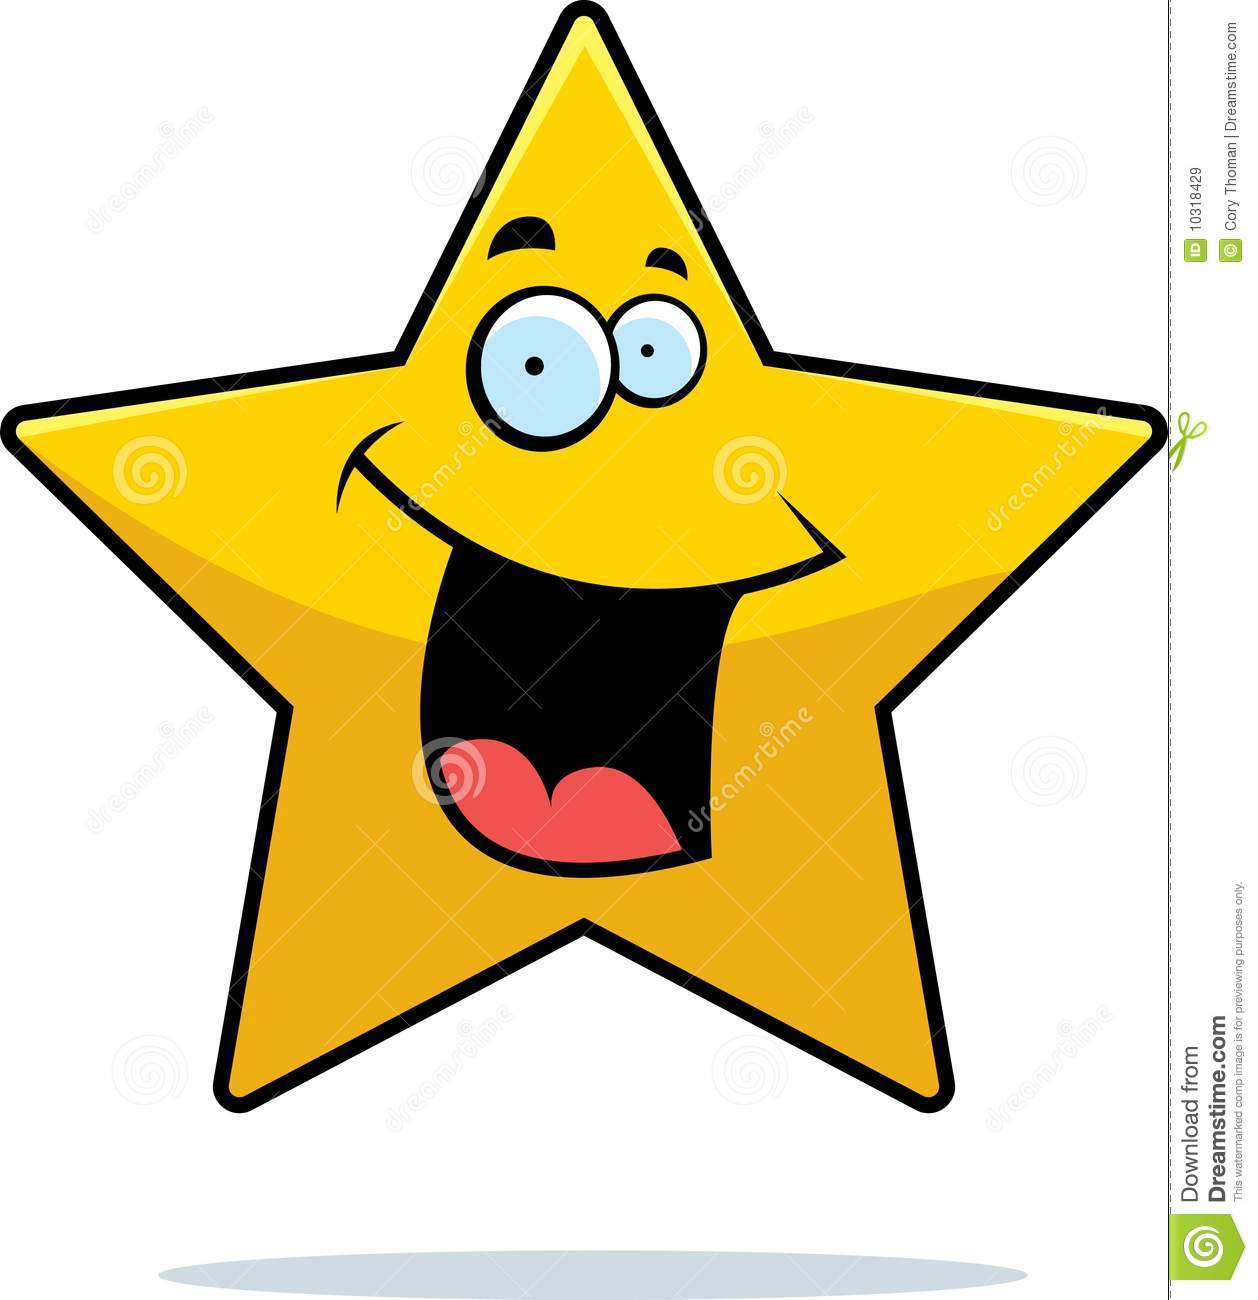 Star thumbs up clipart clip library stock Star Cartoon Mascot Giving Thumbs Up Stock Vector - Image: 62381623 clip library stock